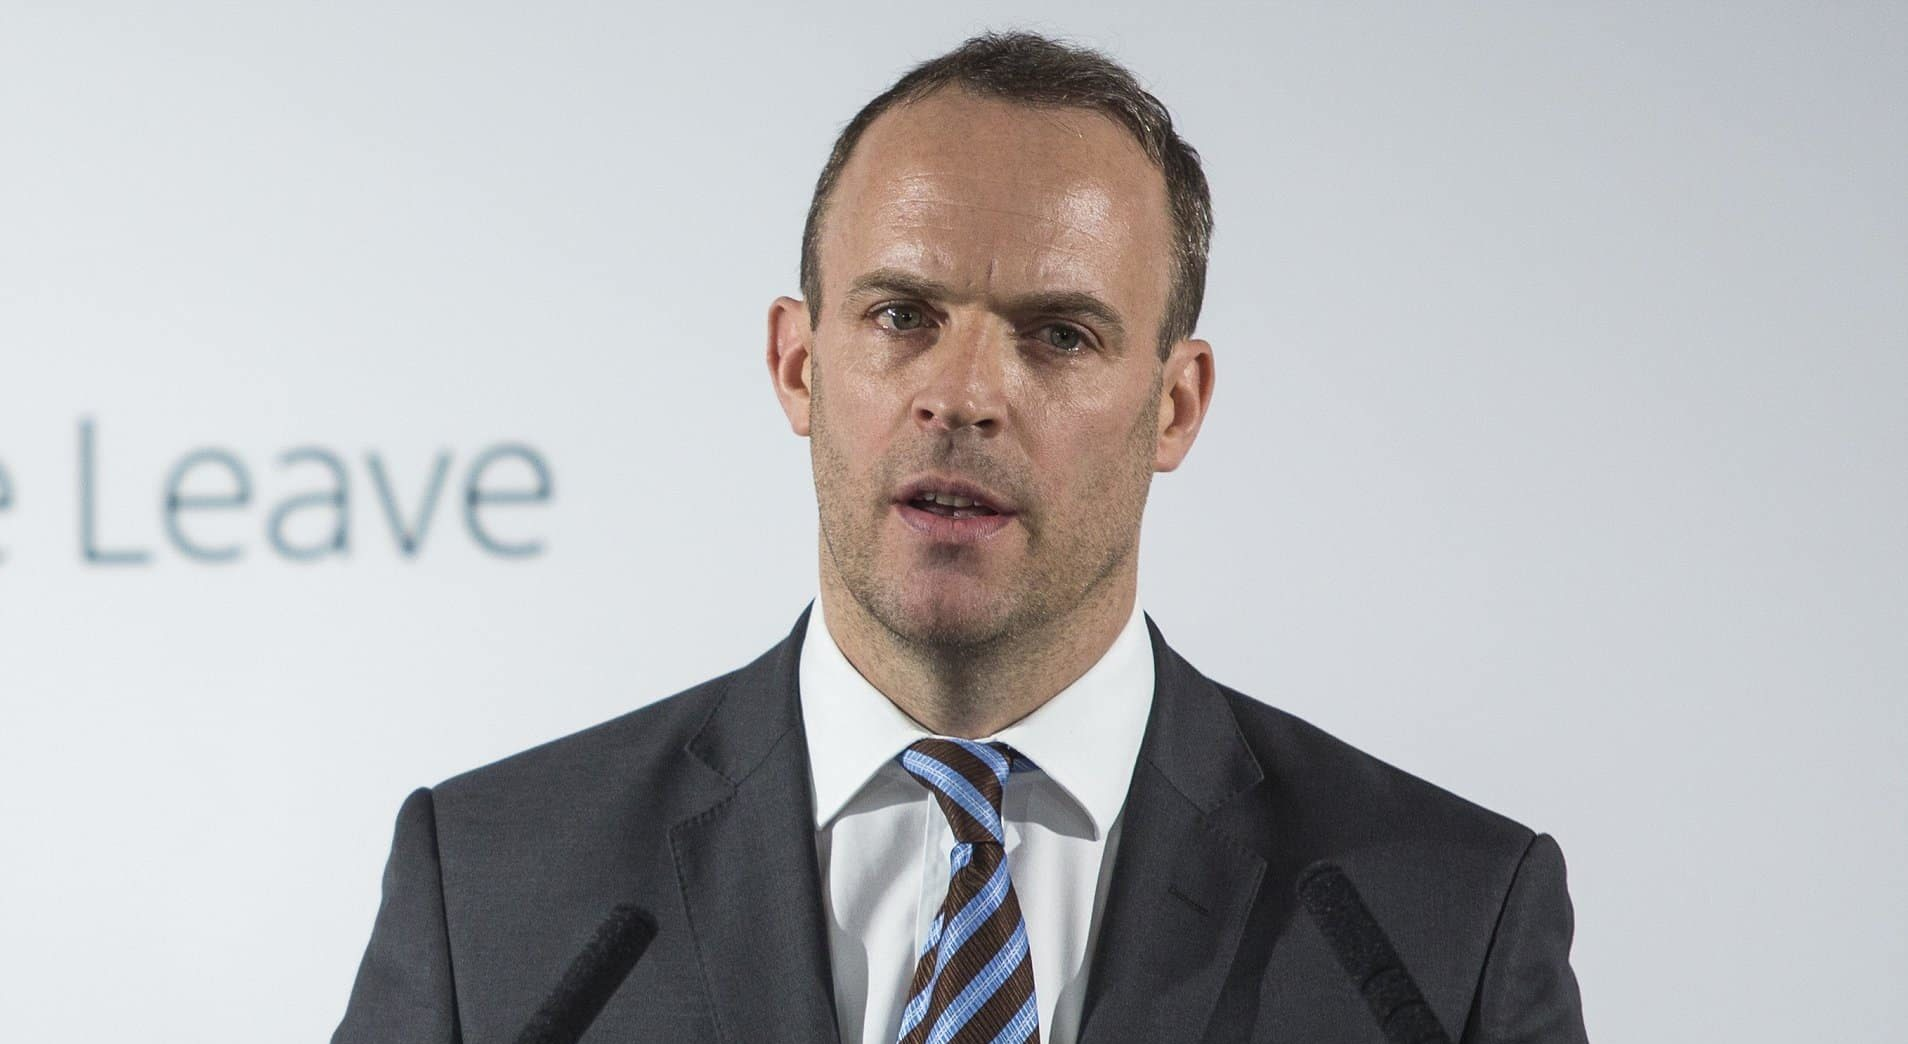 Dominic Raab to act as PM if Boris Johnson contracts COVID-19